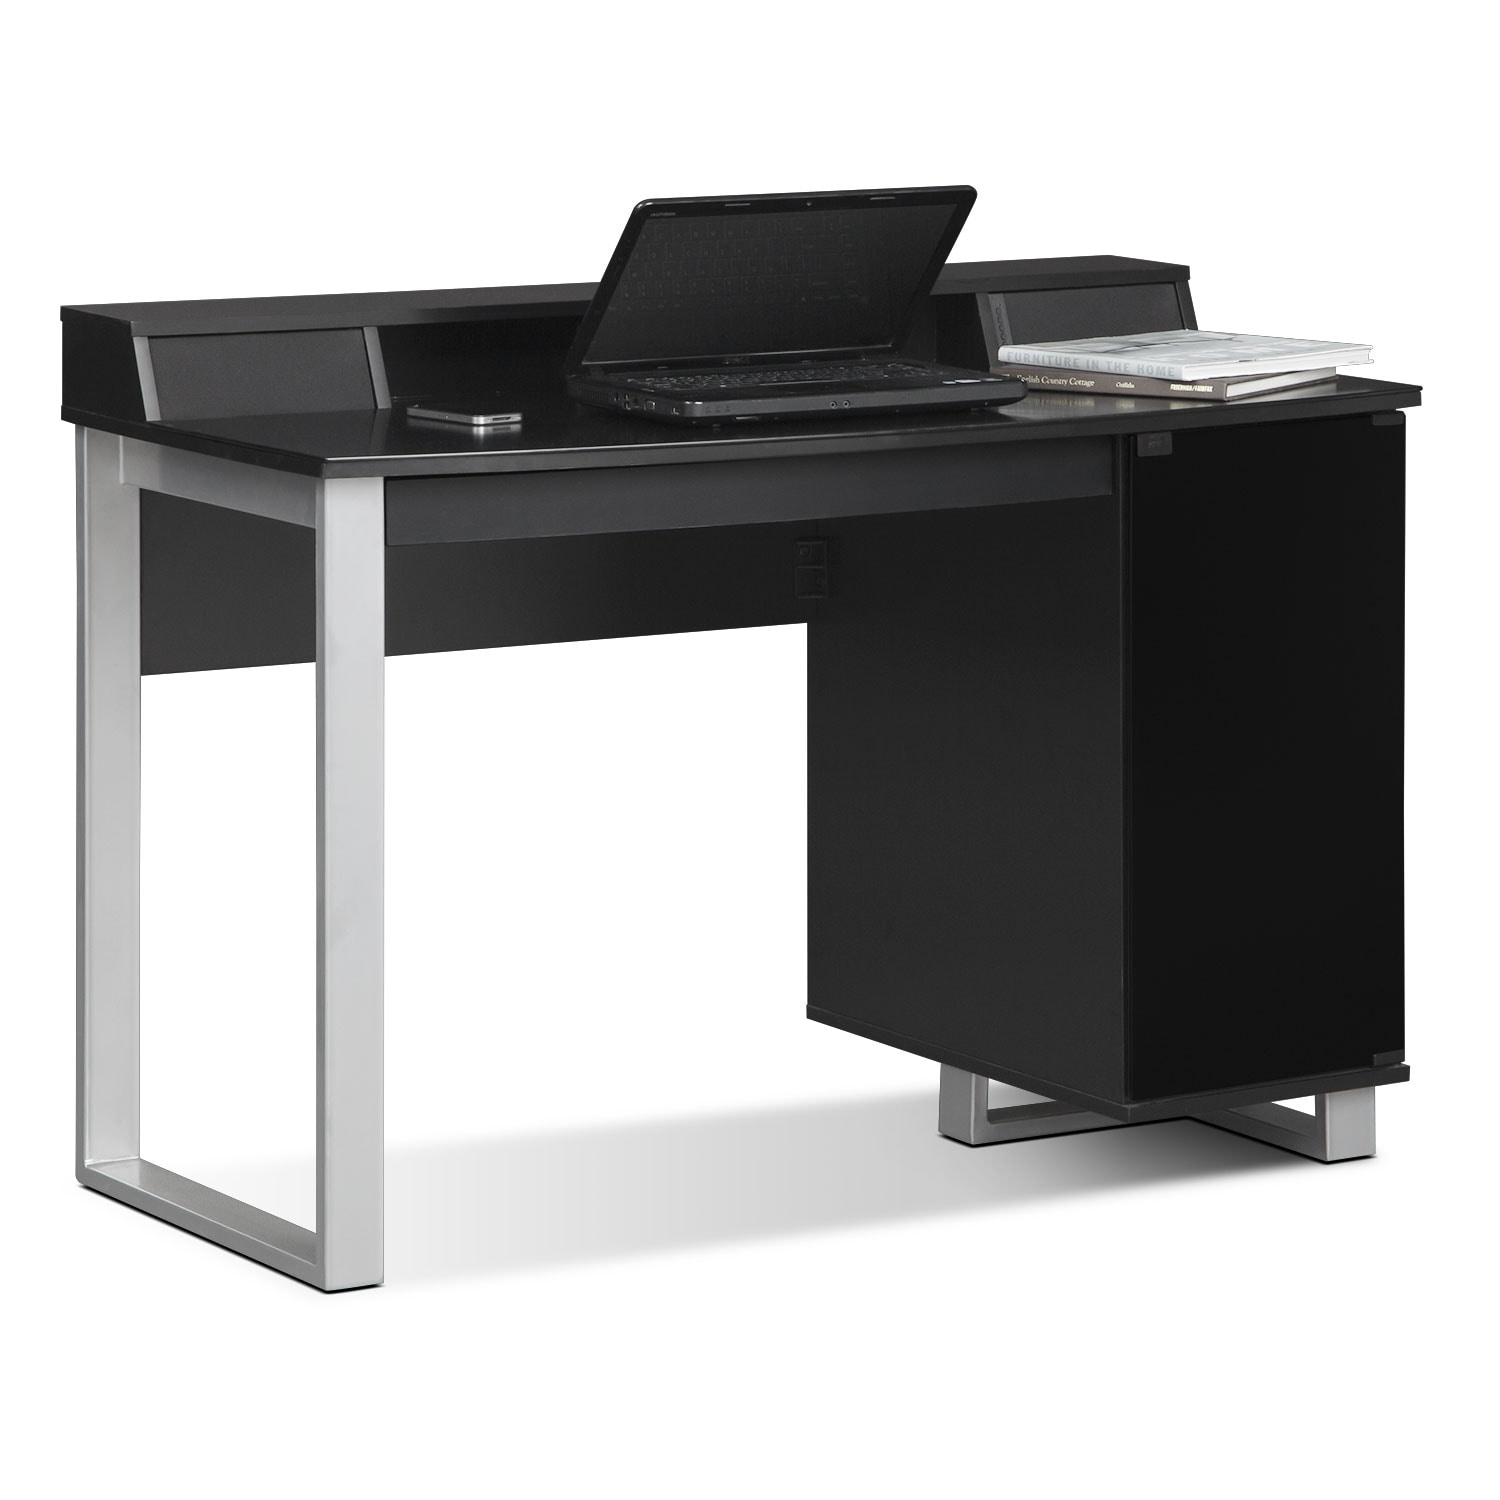 life co home l carver shape kitchen uk office table pc amazon corner desk computer dp large black